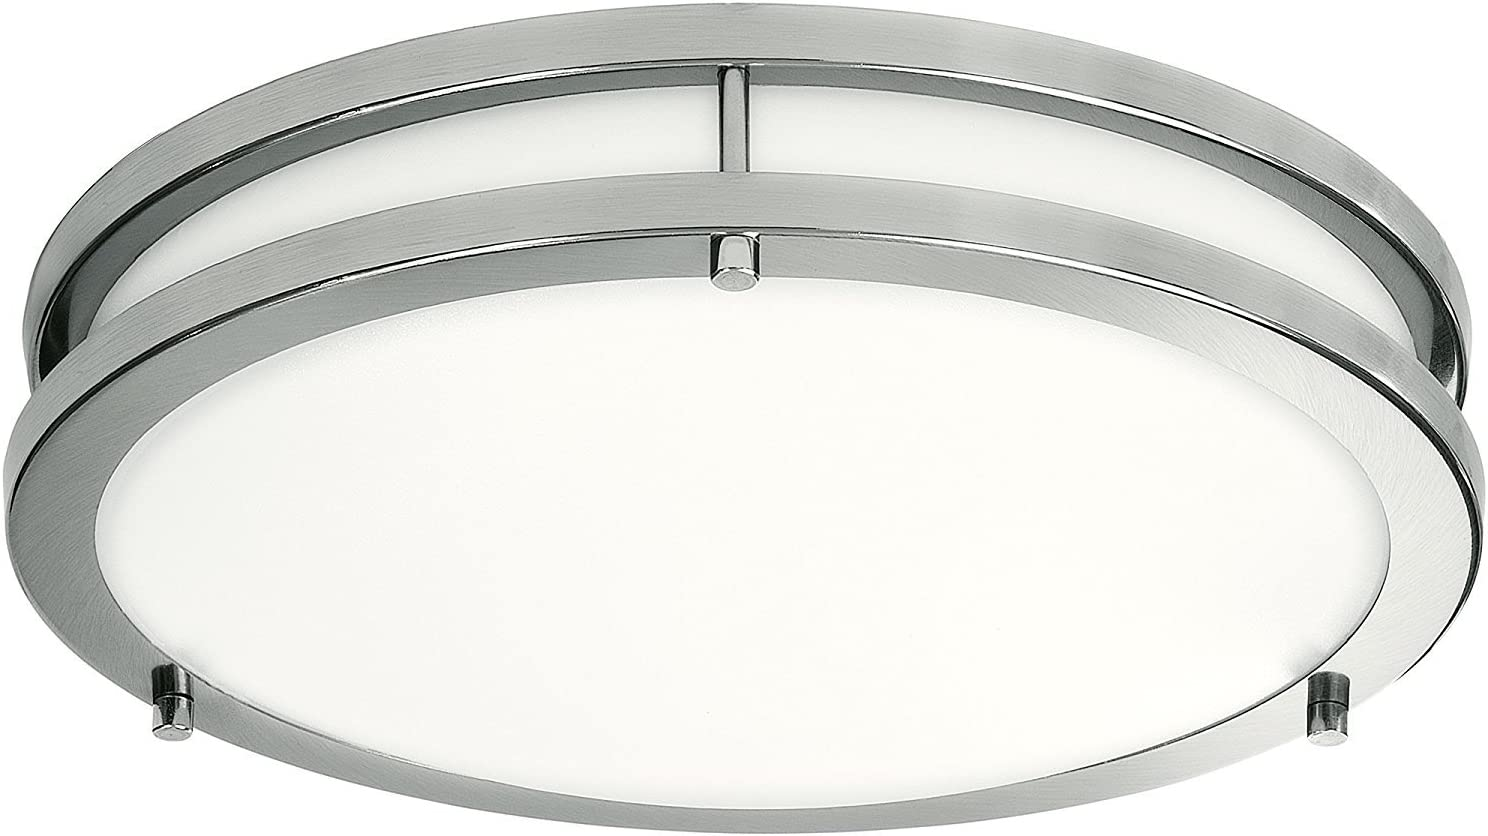 LB72119 LED Flush Mount Ceiling Light, 12 inch, 15W